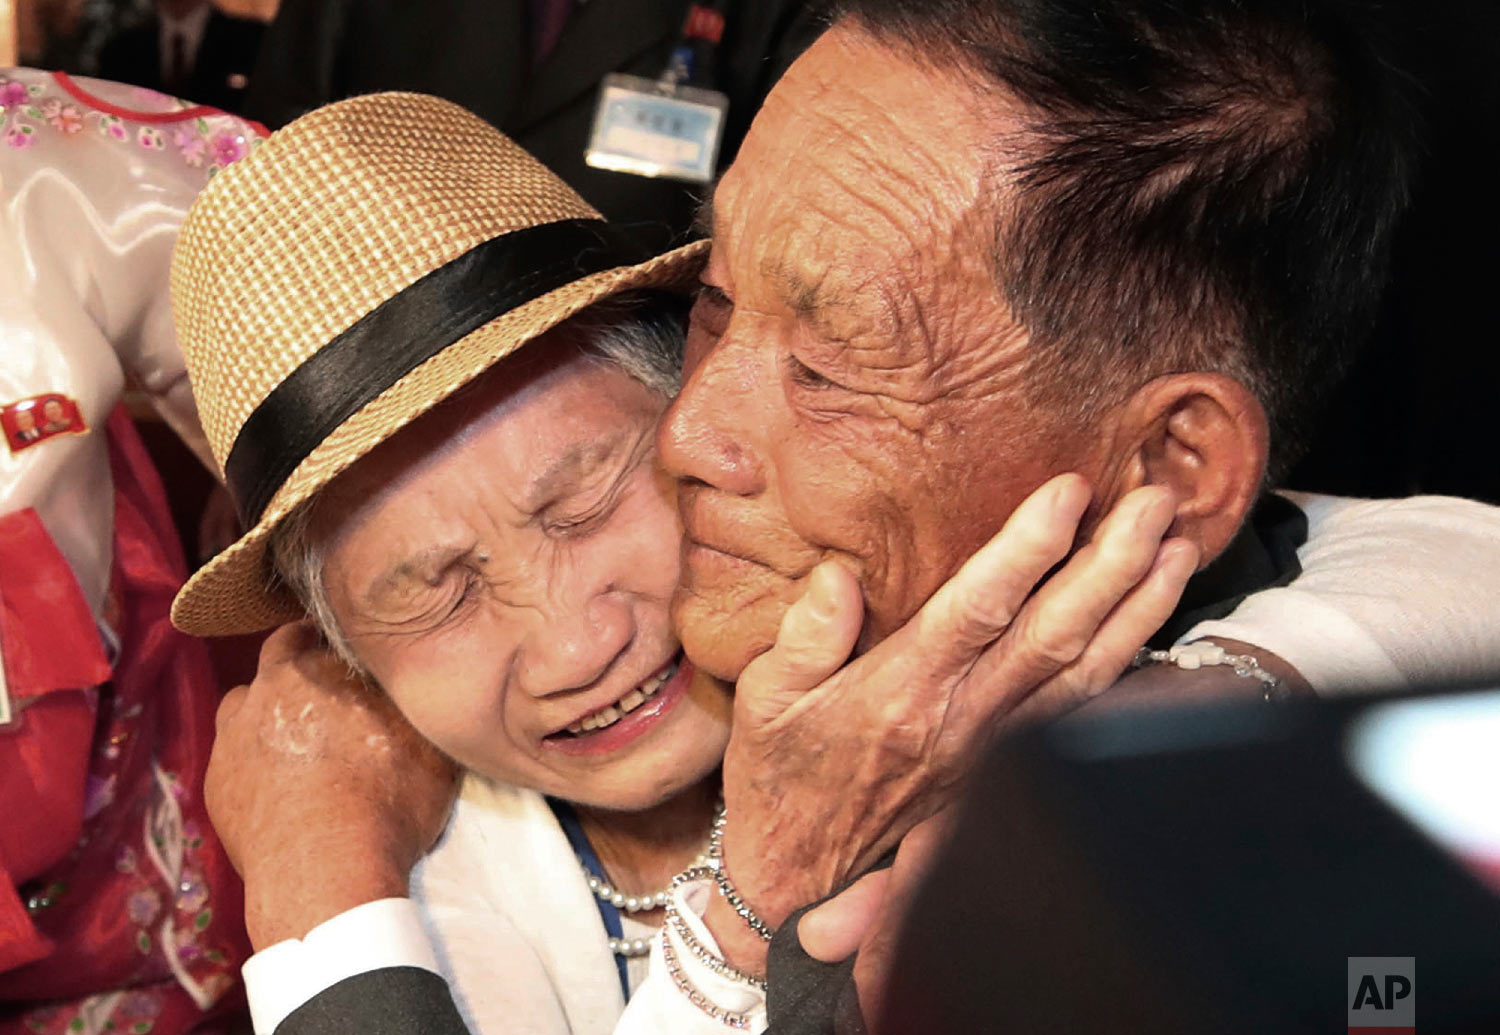 South Korean Lee Keum-seom, 92, weeps with her North Korean son, Ri Sang Chol, 71, during the Separated Family Reunion Meeting at the Diamond Mountain resort in North Korea on Aug. 20, 2018. Dozens of elderly South Koreans crossed the heavily fortified border into North Korea for heart-wrenching meetings with relatives most haven't seen since they were separated by the turmoil of the Korean War. (Lee Ji-eun/Yonhap via AP)